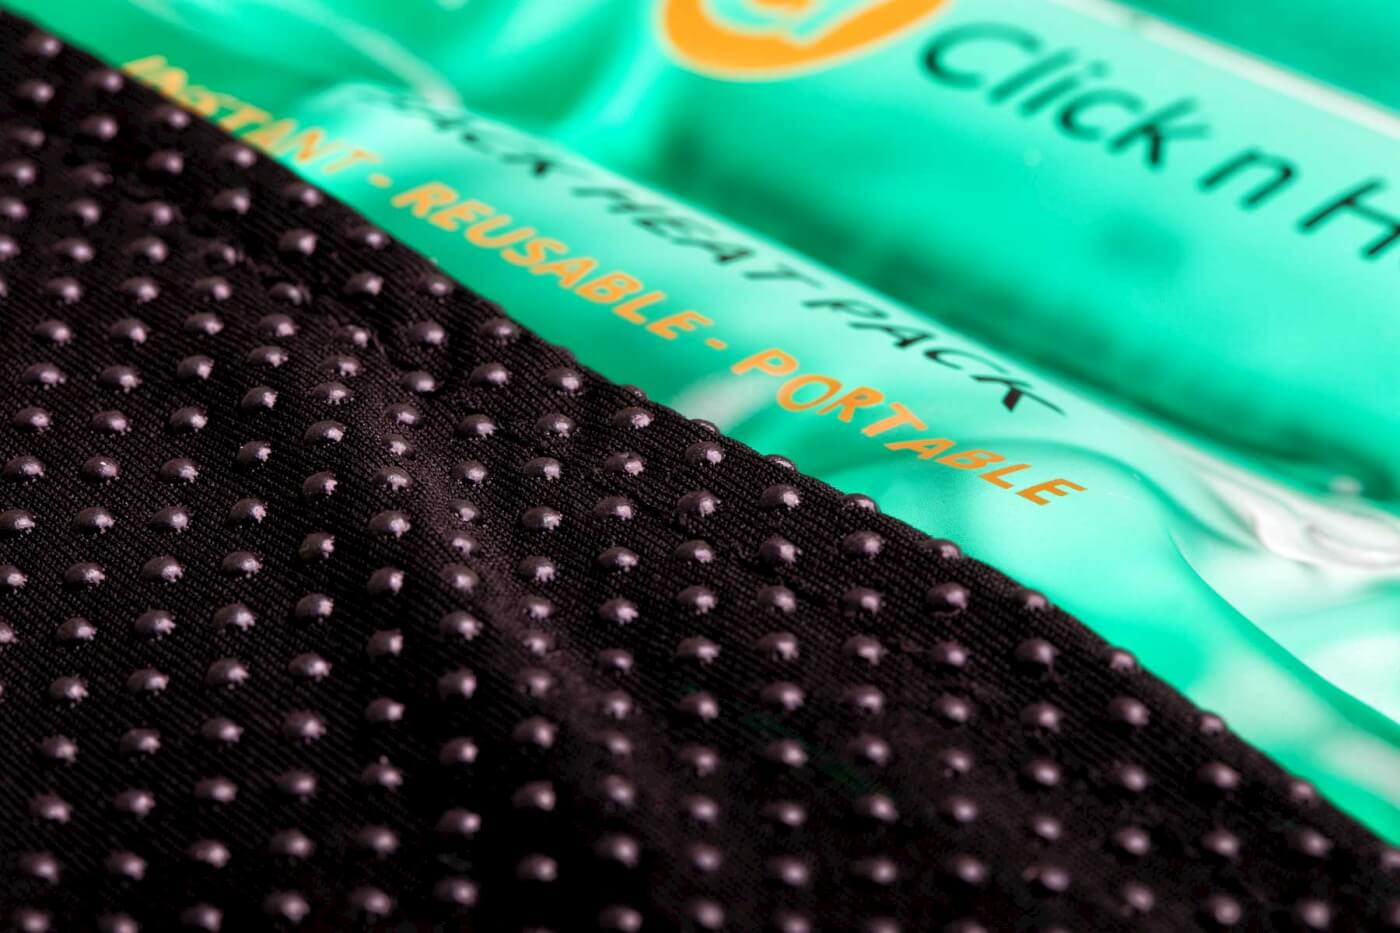 Product photography of Heat pack closeup of fabric